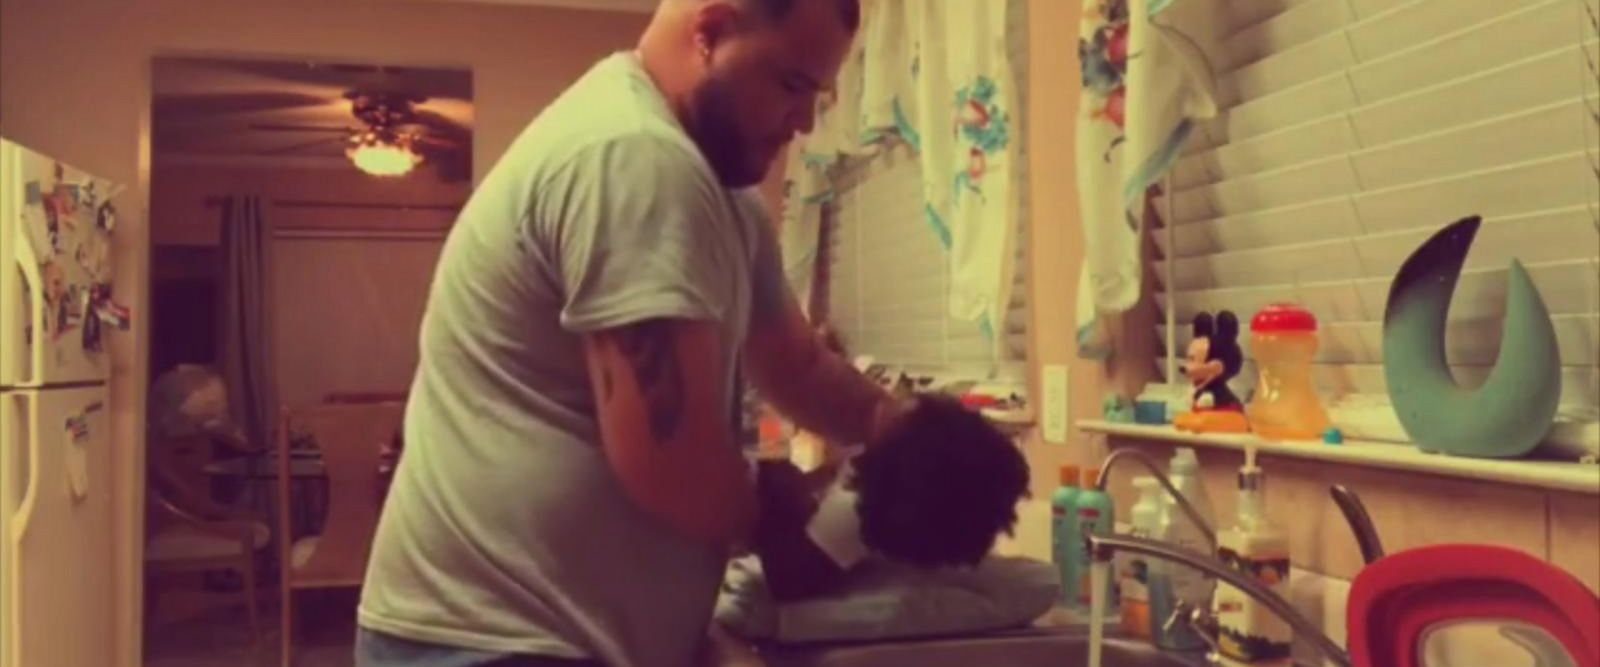 VIDEO: Dad and daughter bond while washing her hair